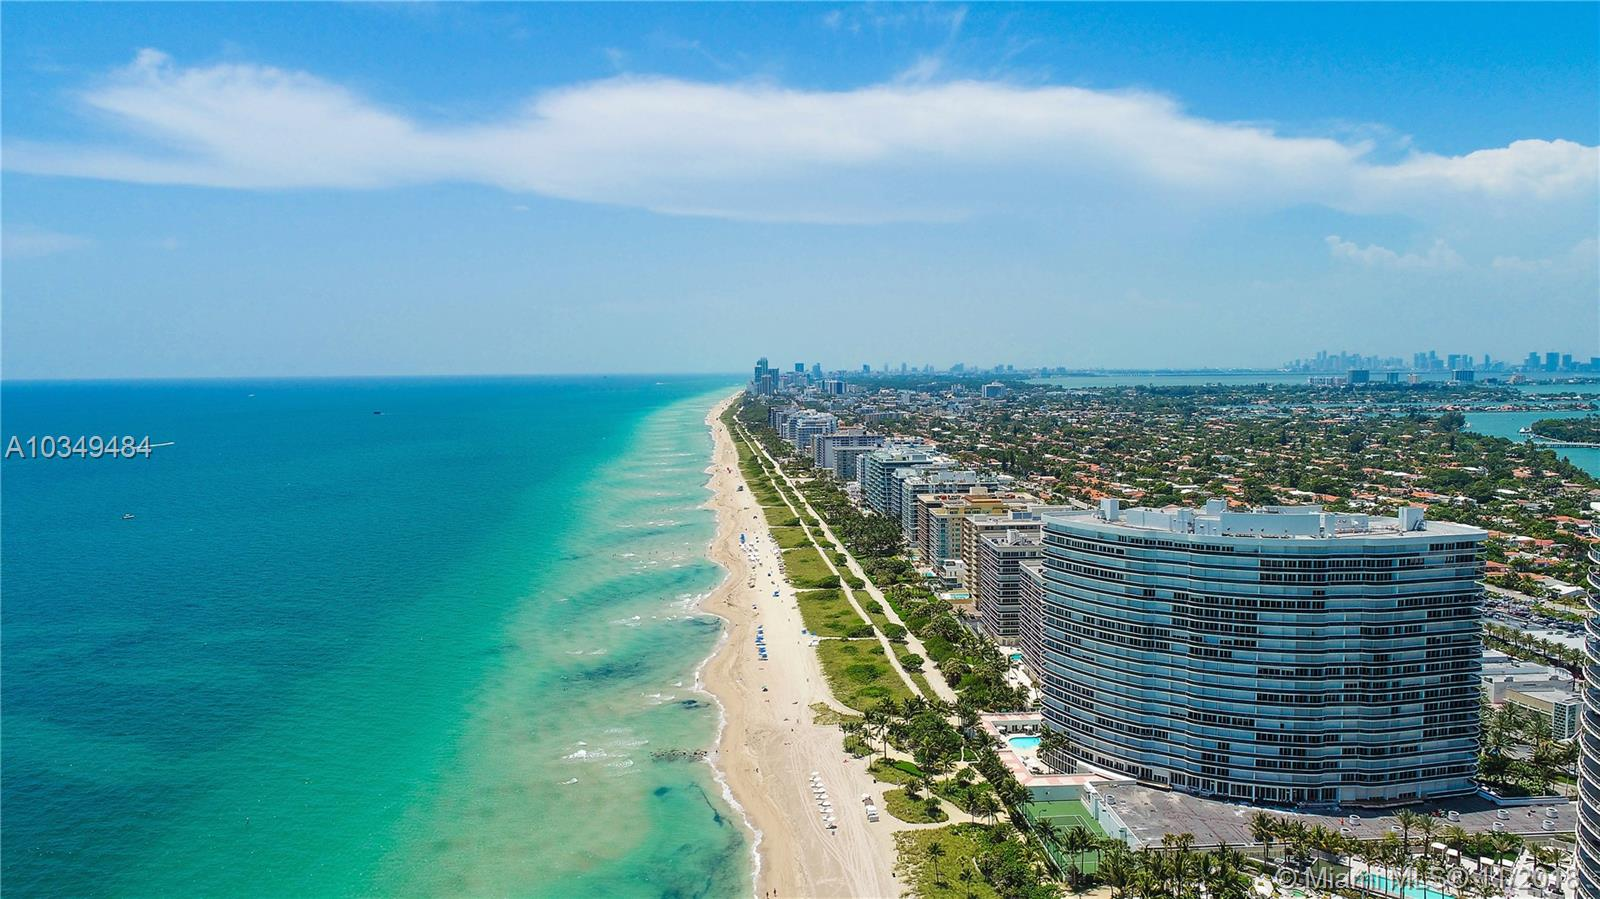 9601 Collins Ave, 901 - Bal Harbour, Florida